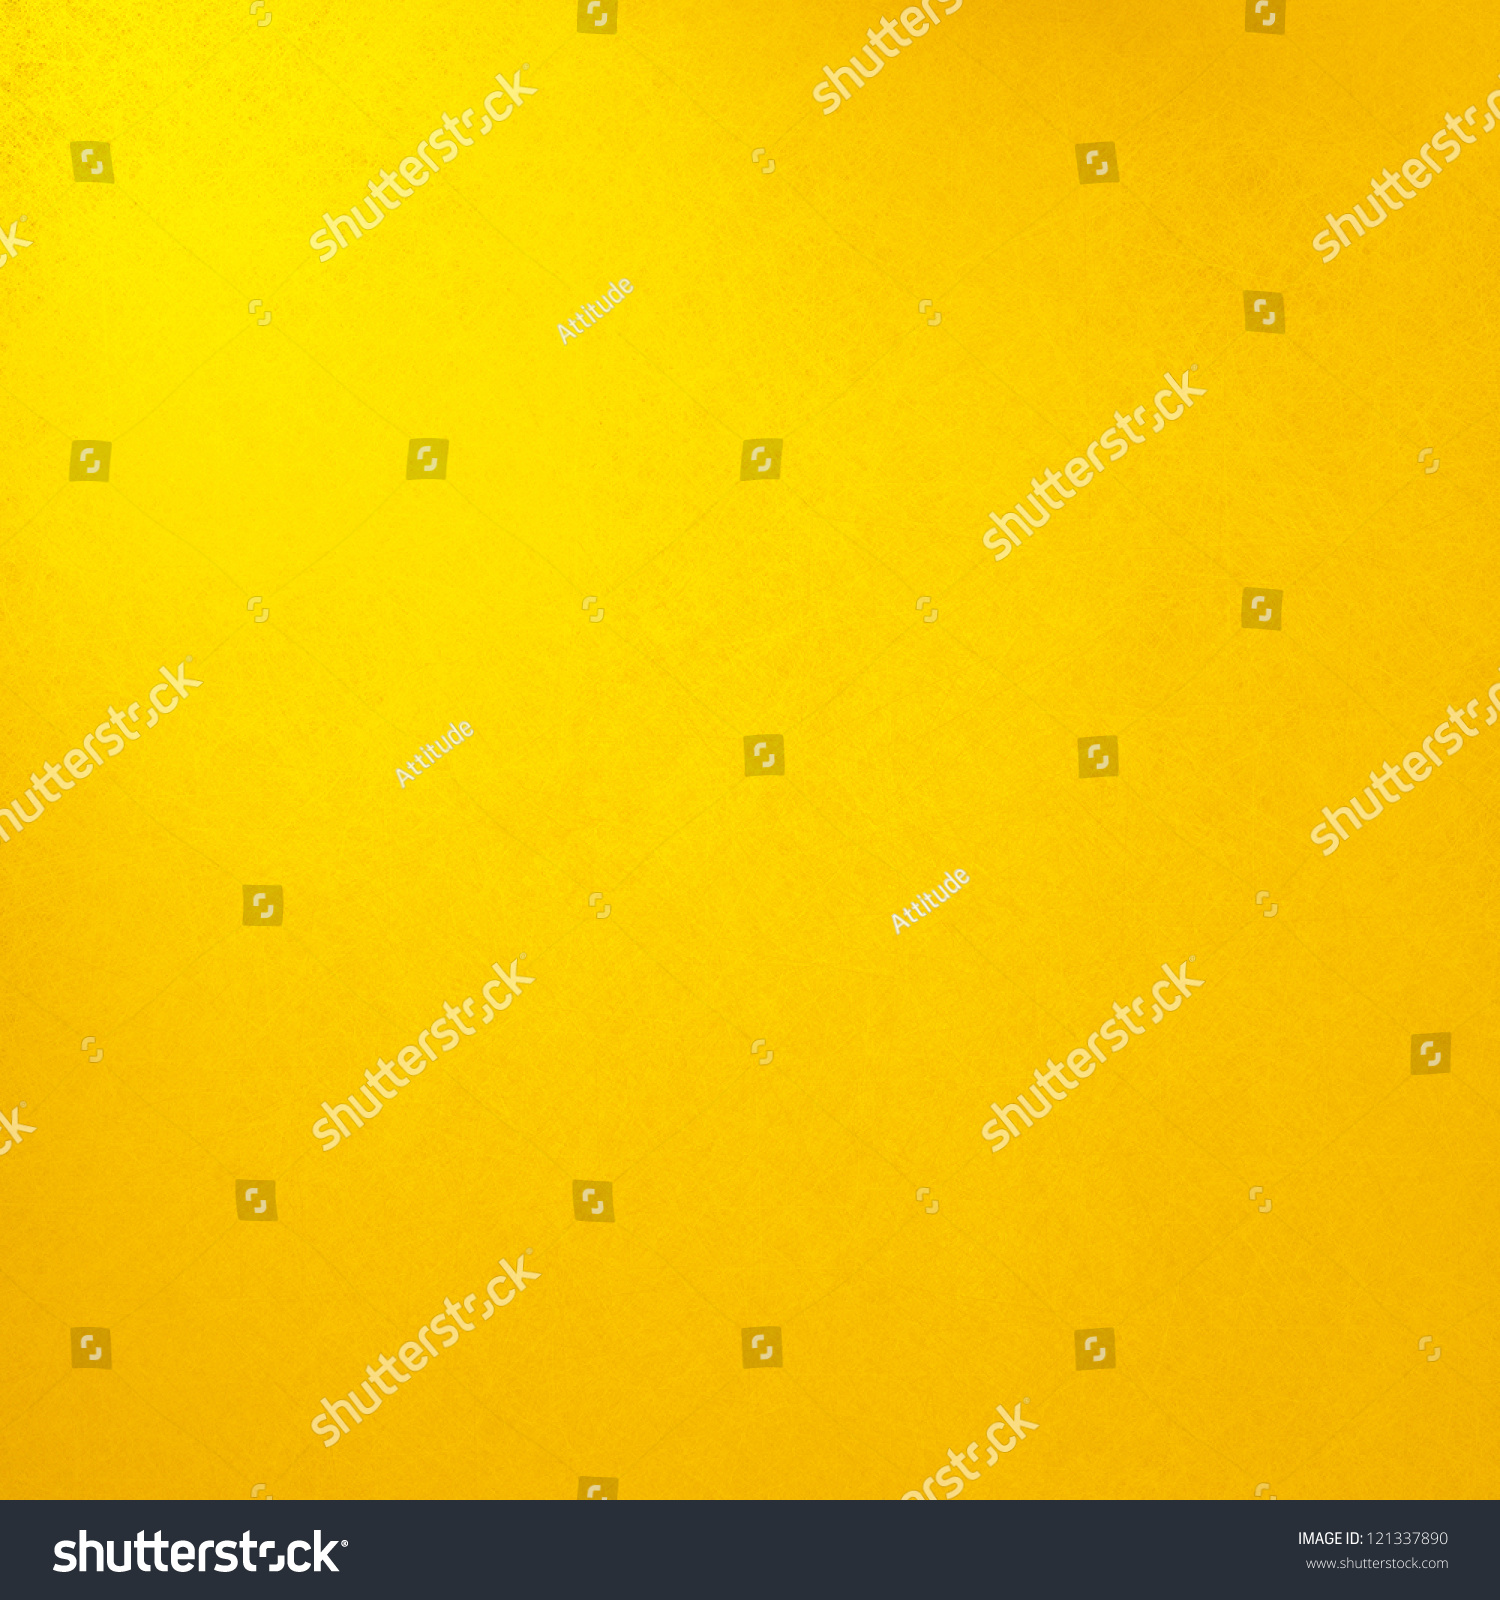 Background Images Stock Photos amp Vectors  Shutterstock